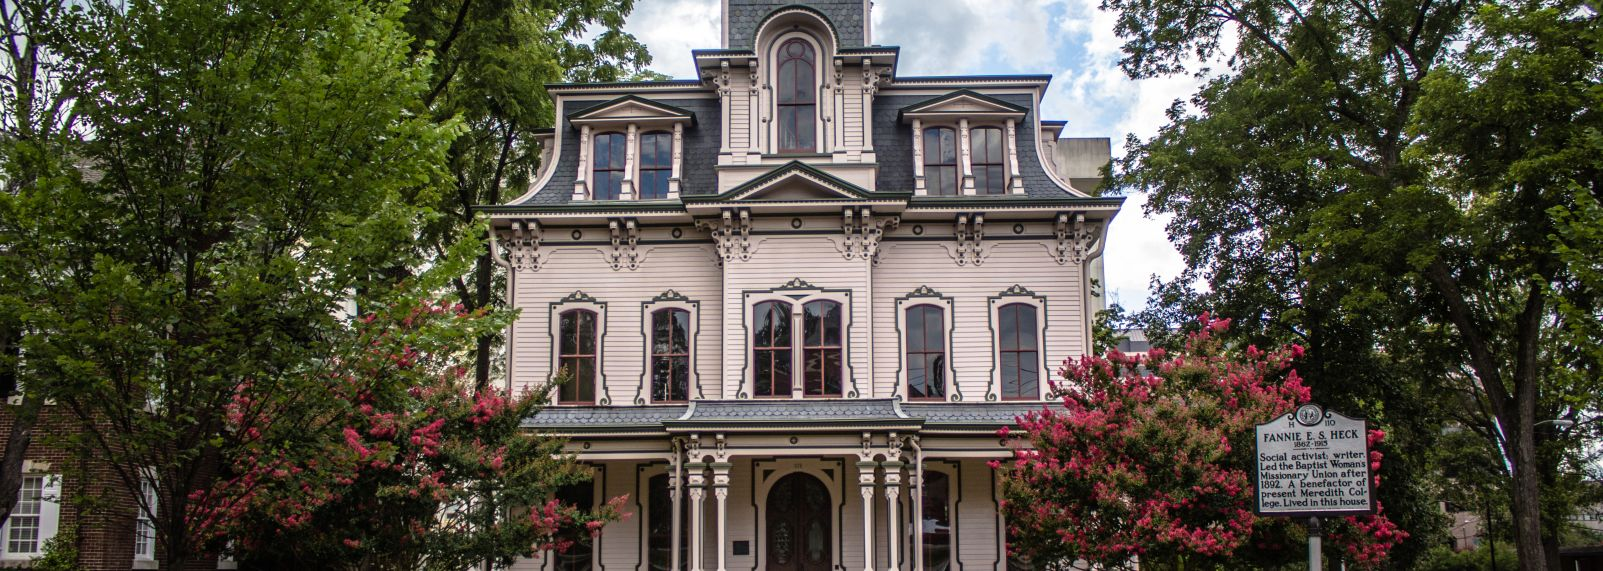 Heck-Andrews House 02-201.JPG